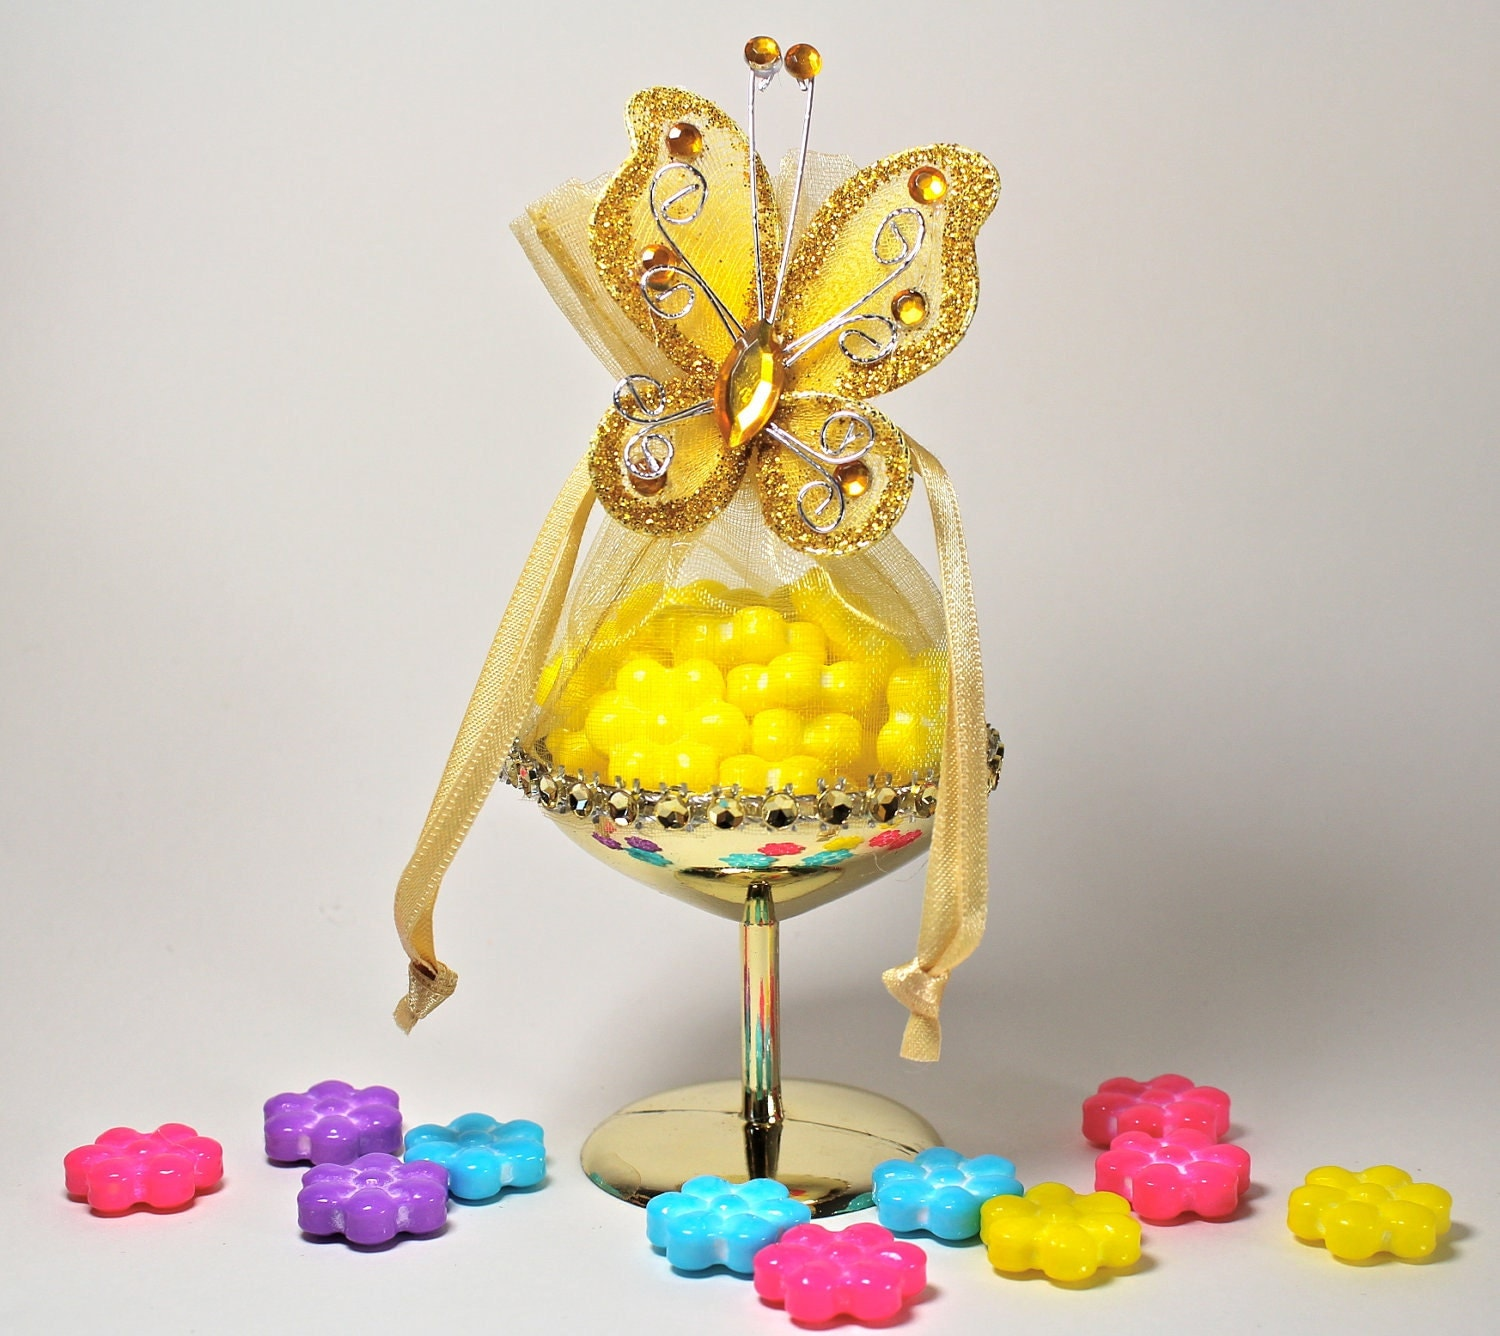 Wedding Gift Cocktail Glasses : Items similar to Martini Glass Favor, Yellow Wedding Favors, Candy ...